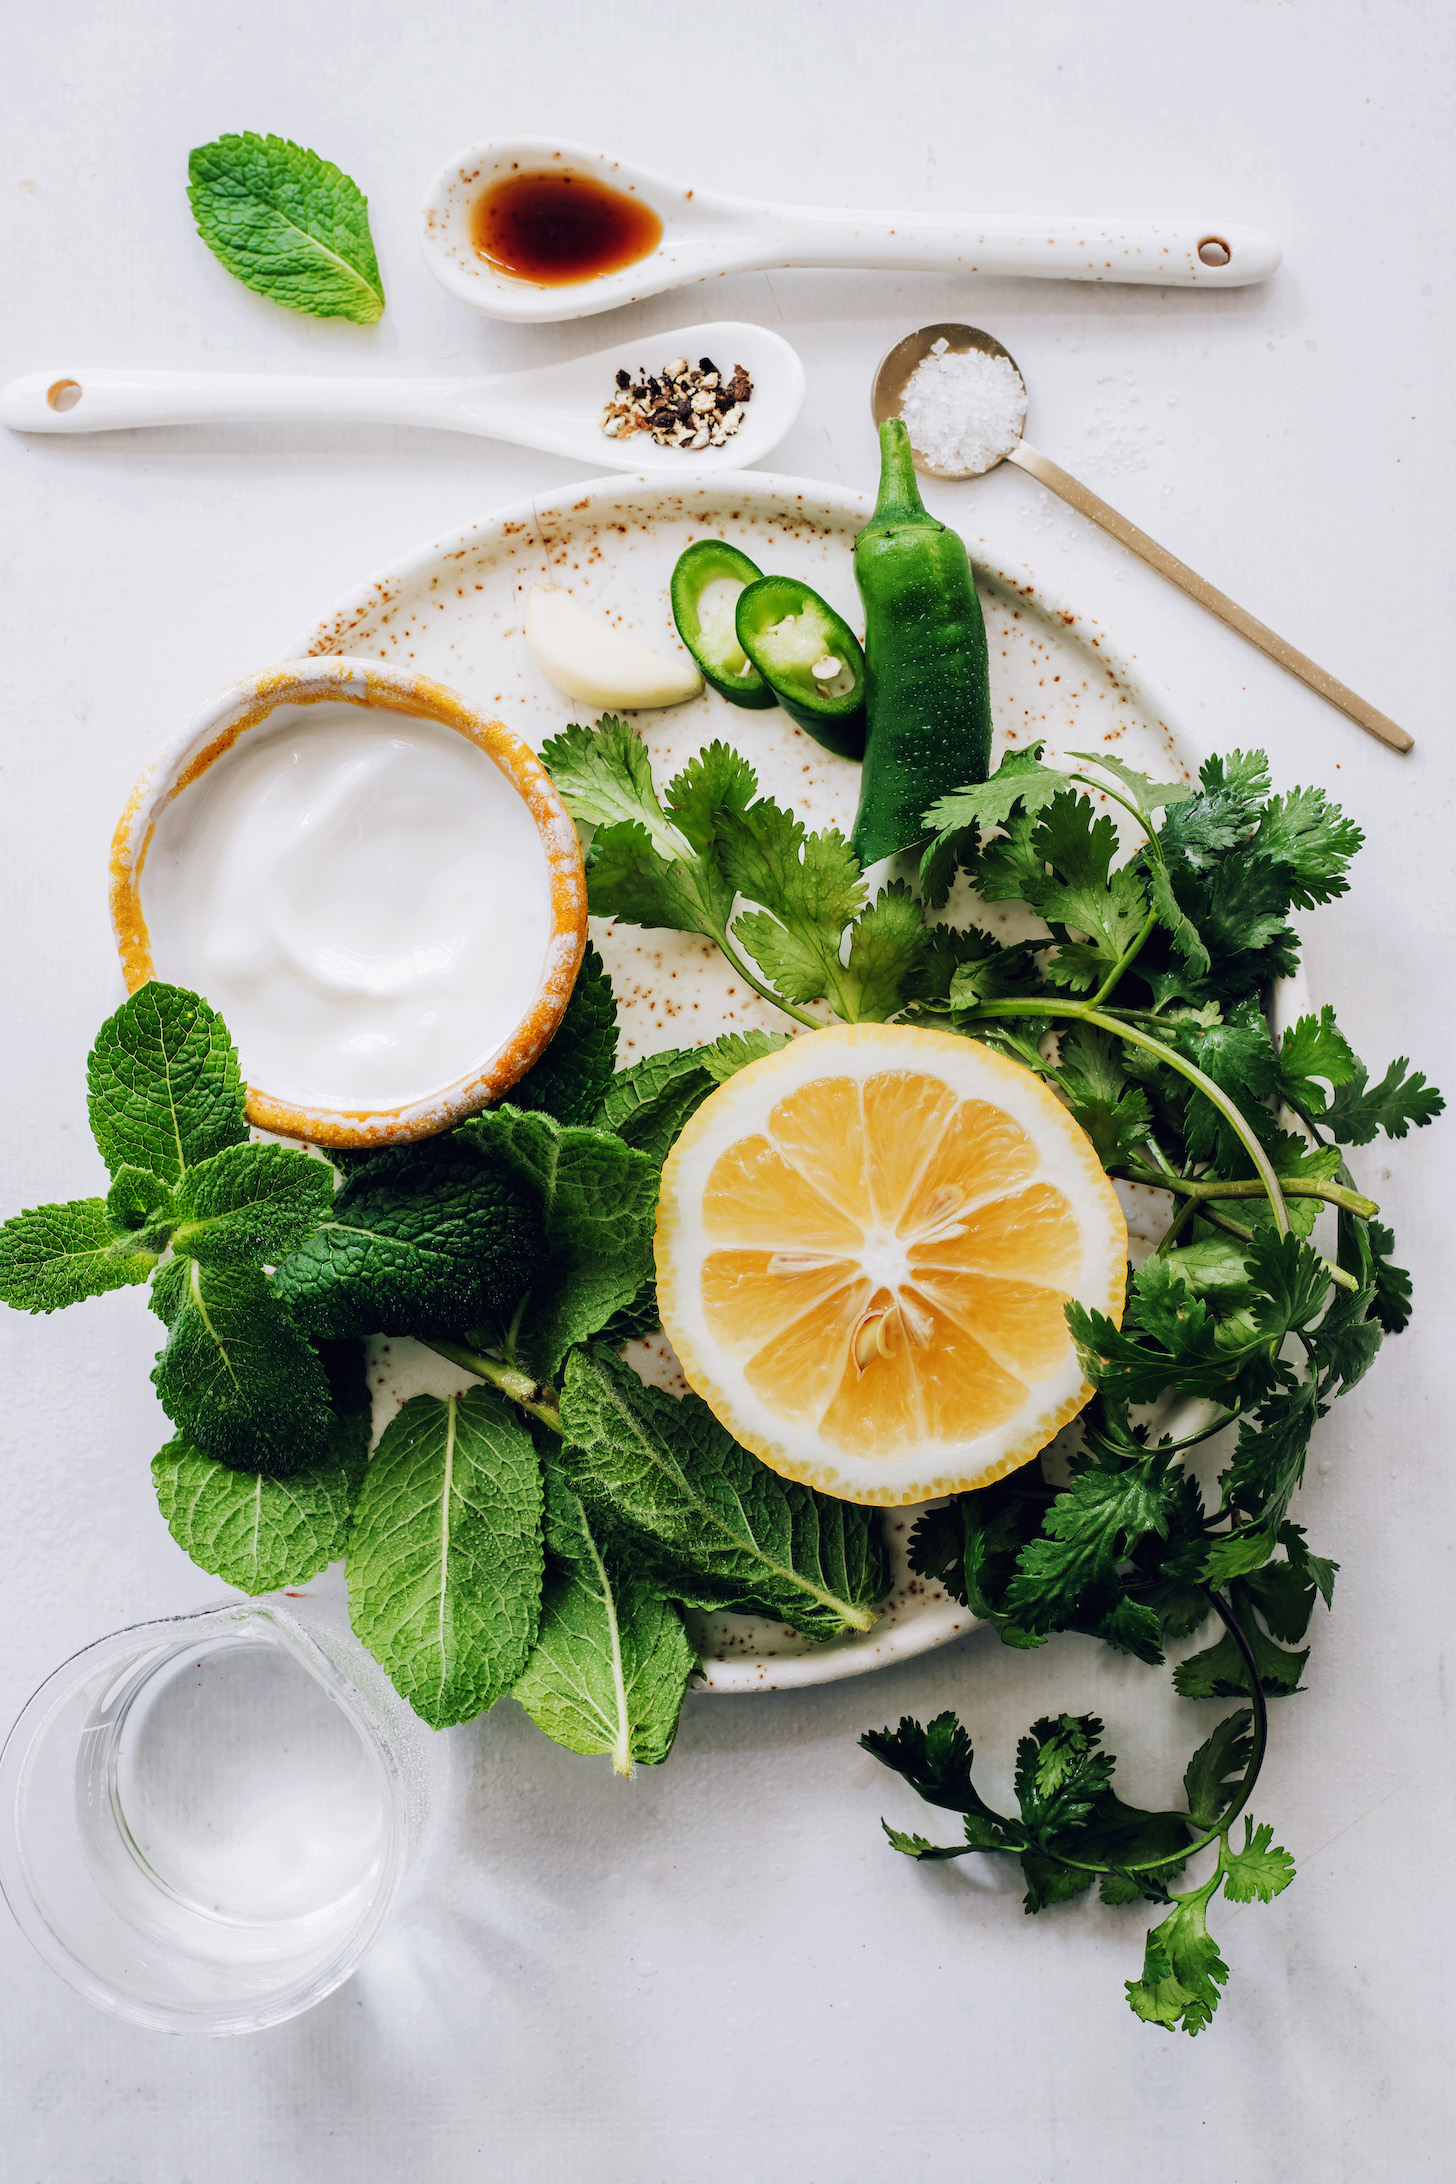 Maple syrup, salt, pepper, and water around a plate with coconut yogurt, mint, cilantro, lemon, jalapeno, and garlic